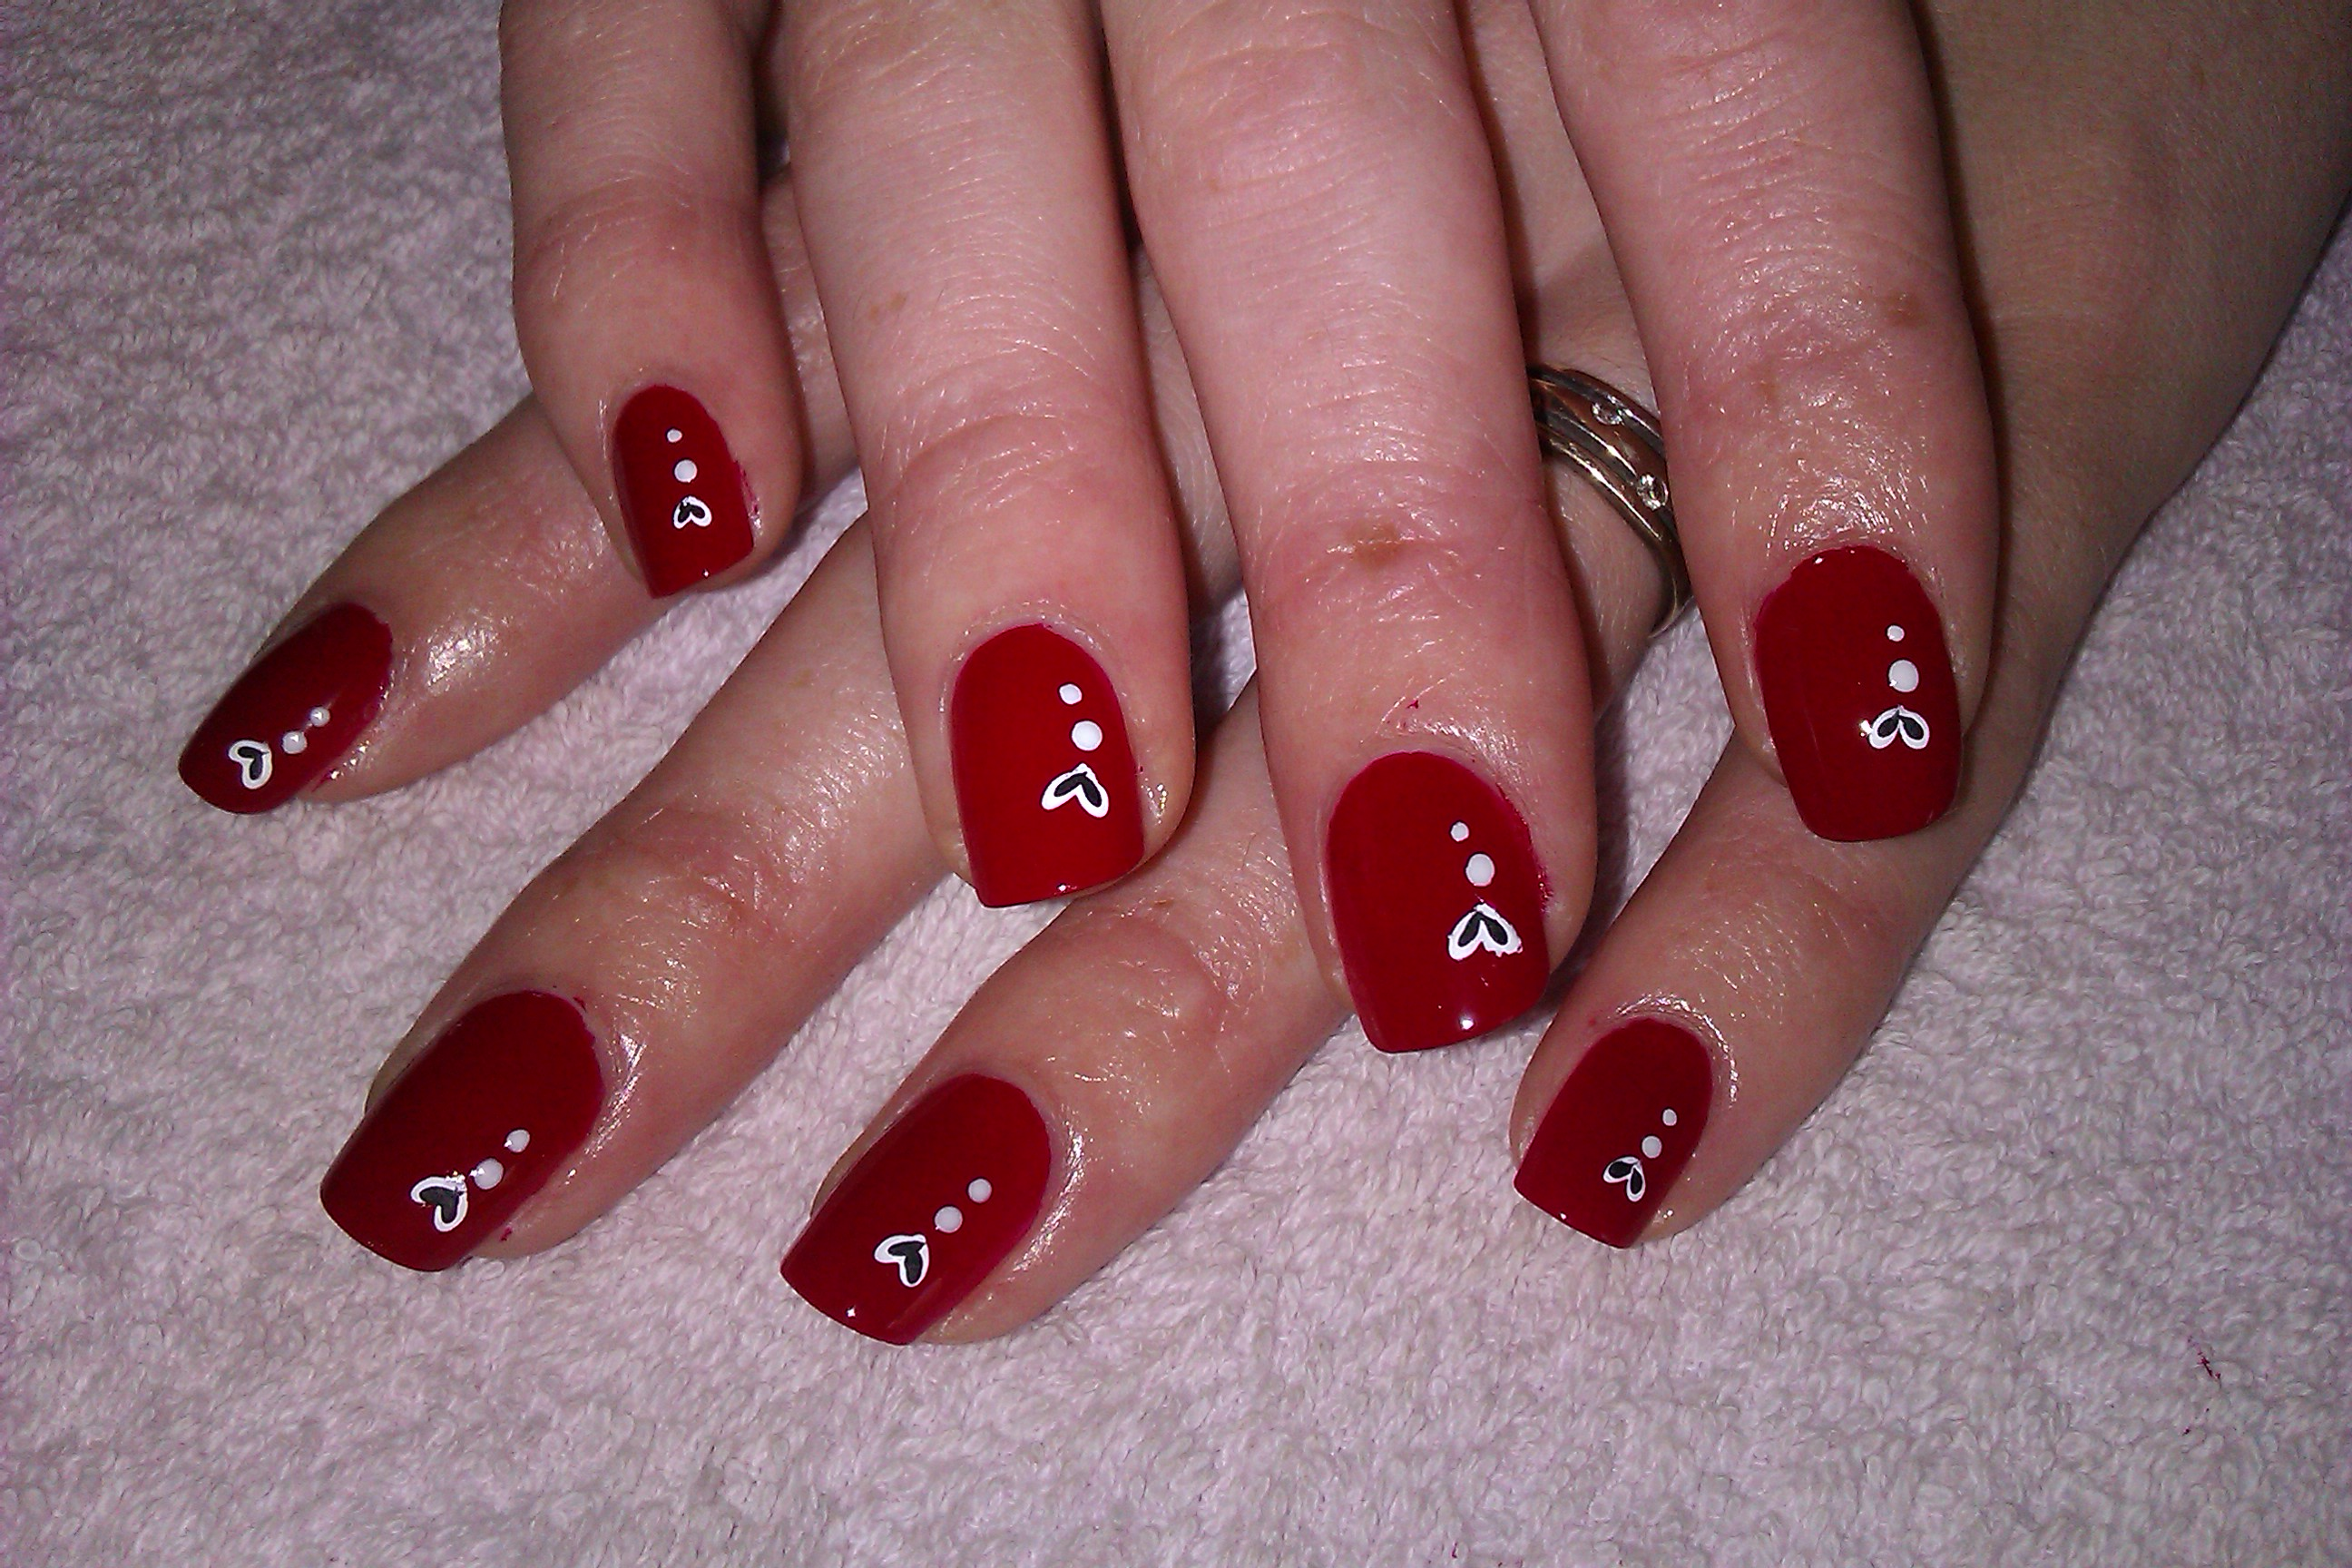 Nail art wedding red nail art view images beautiful wedding nail art designs prinsesfo Gallery